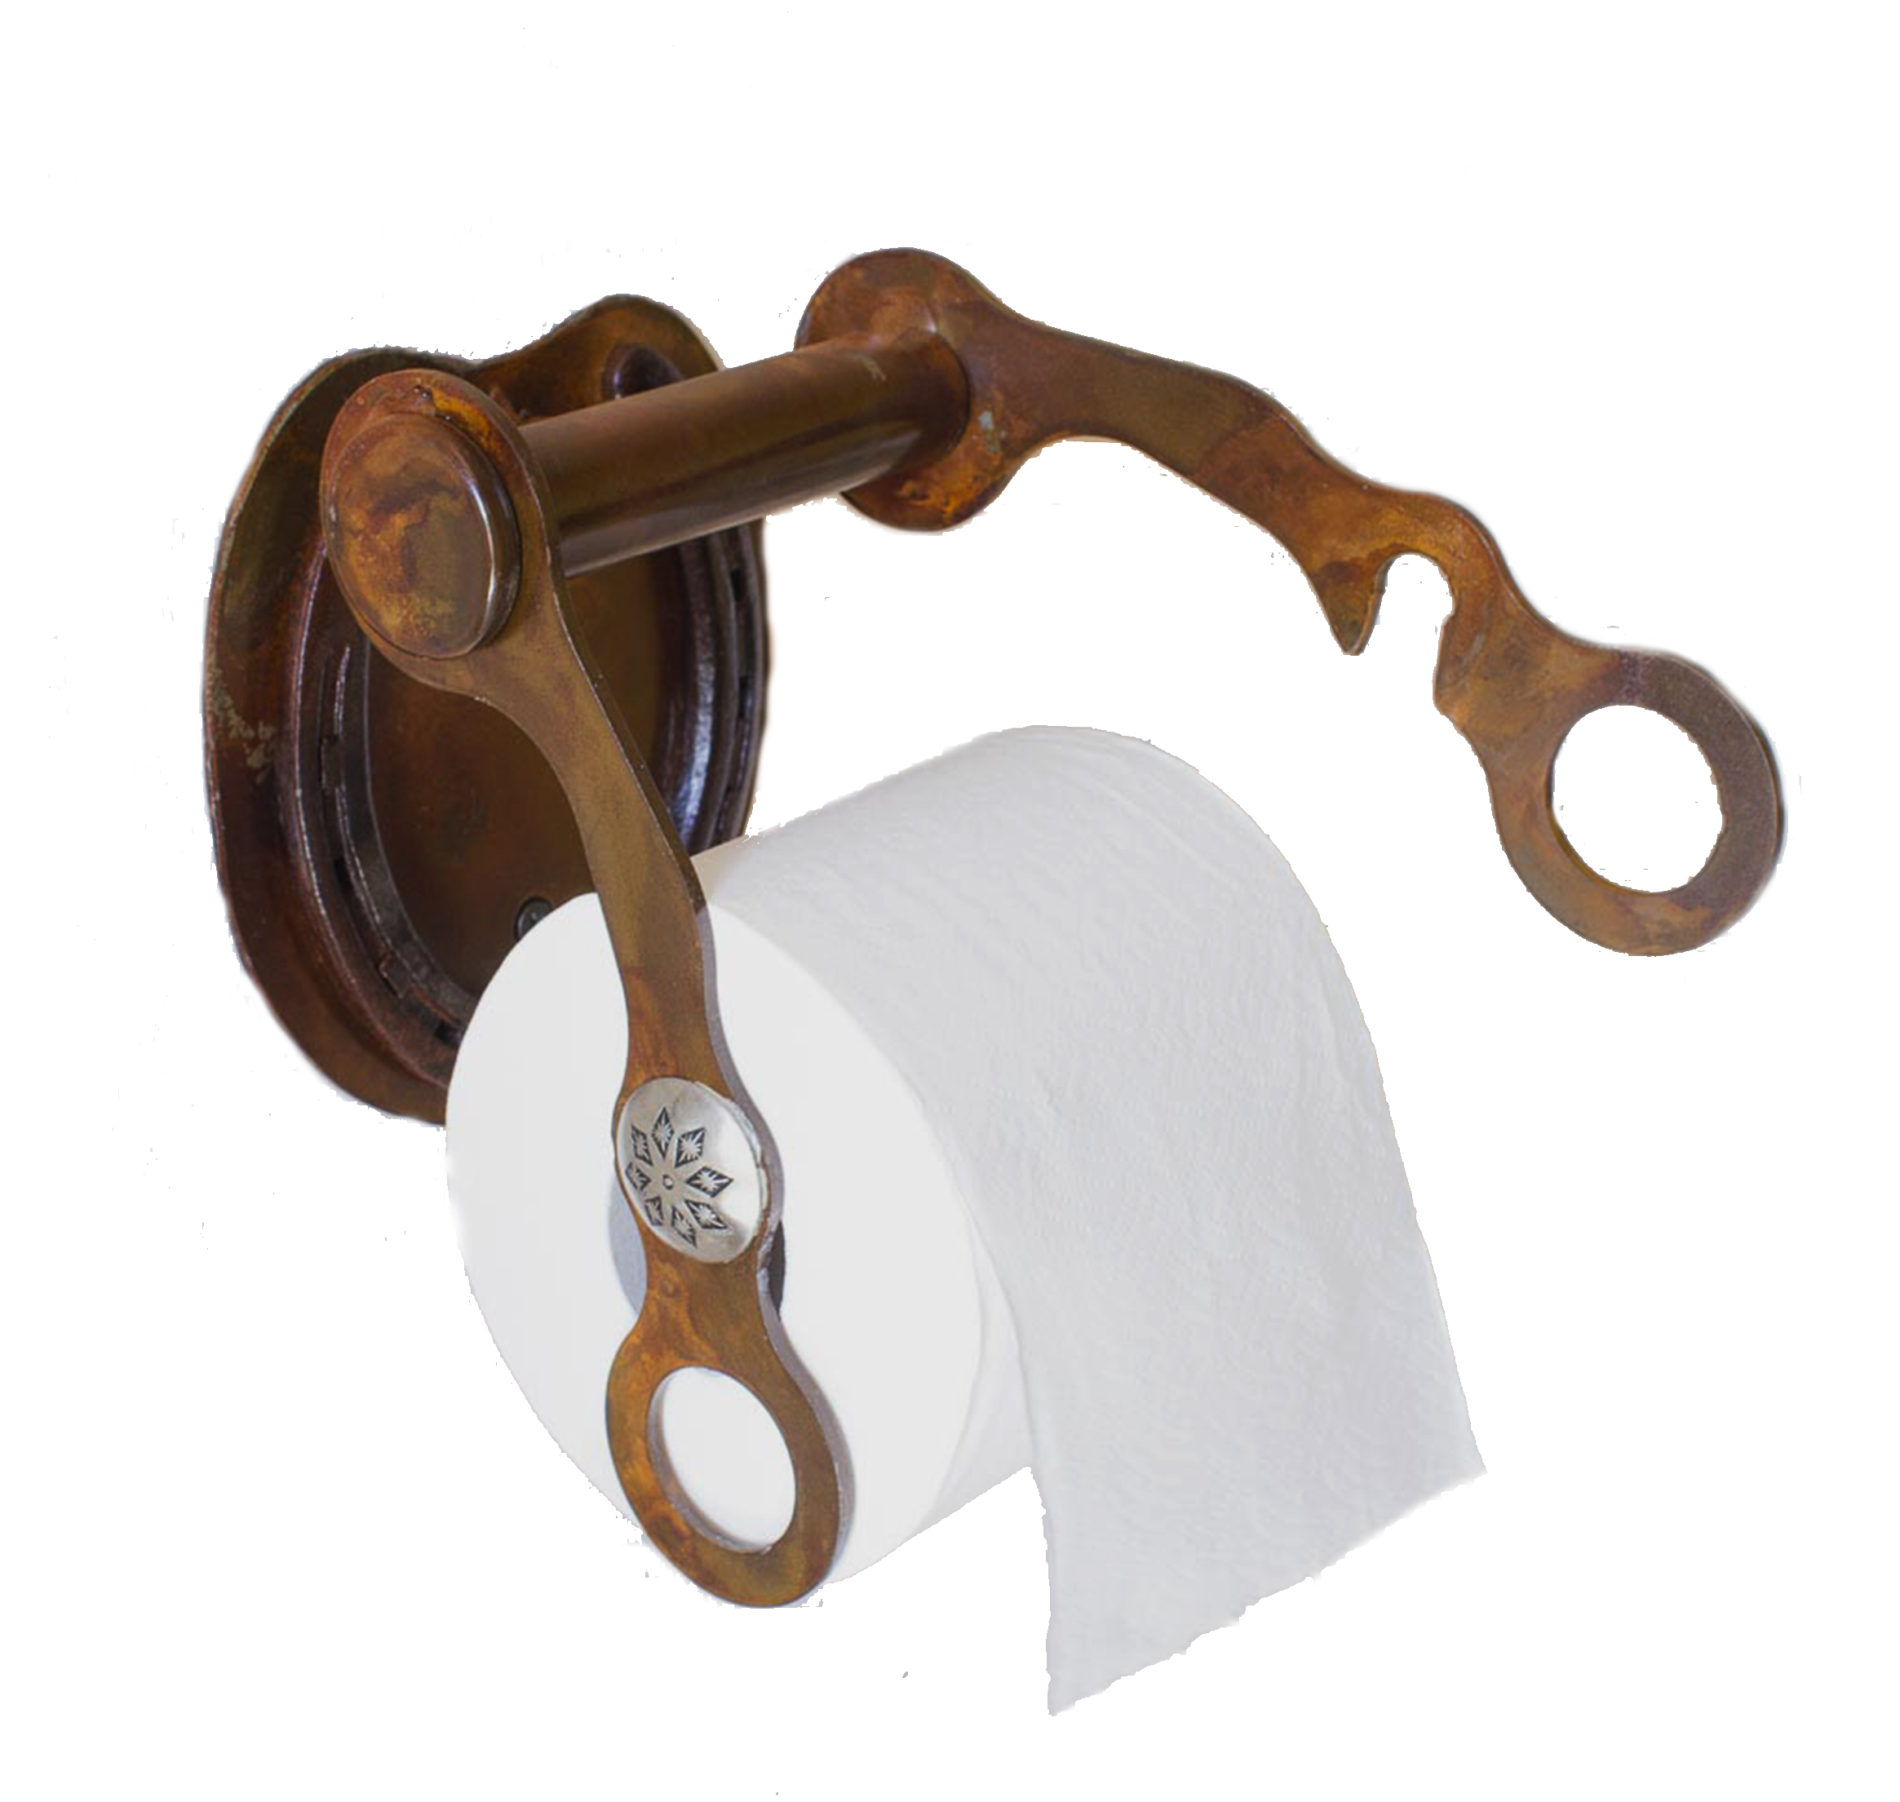 Kela Steel Mountain And Western Themed Rustic Toilet Paper Holder Functional Home Decor